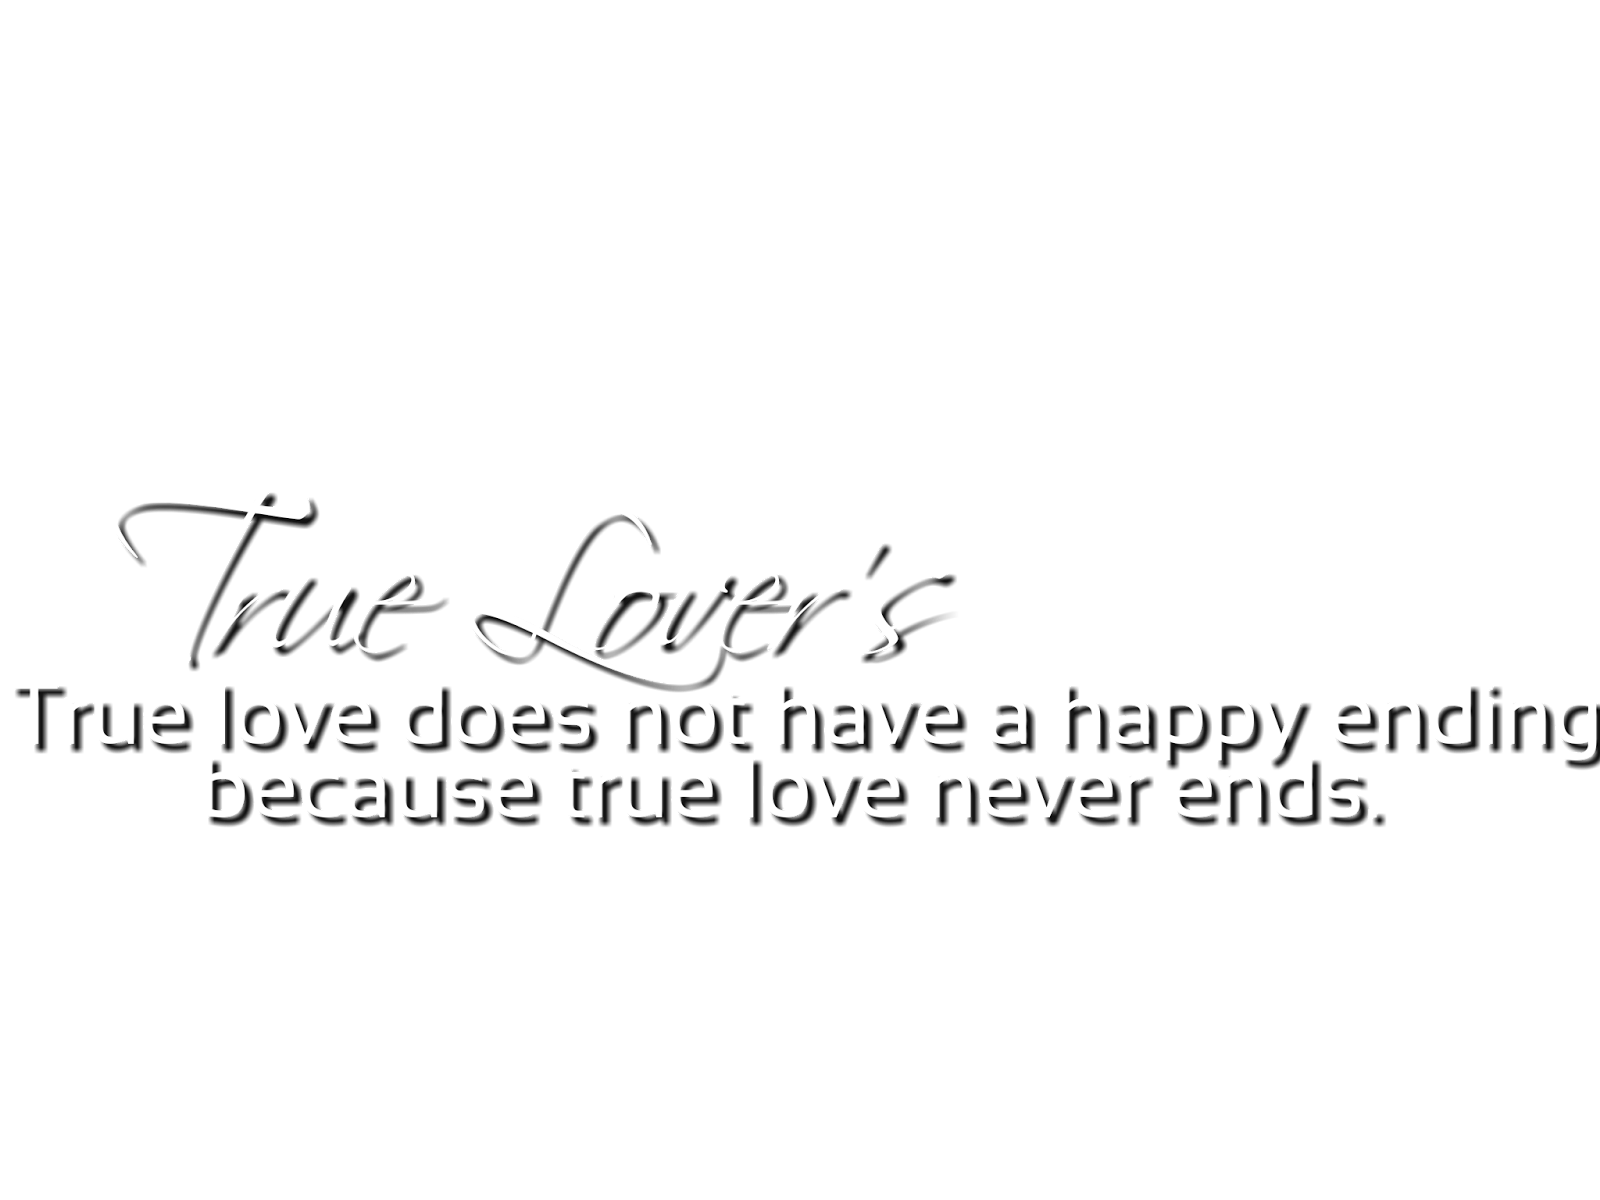 Love Text Png In One Line. By Awara. - Love Text PNG